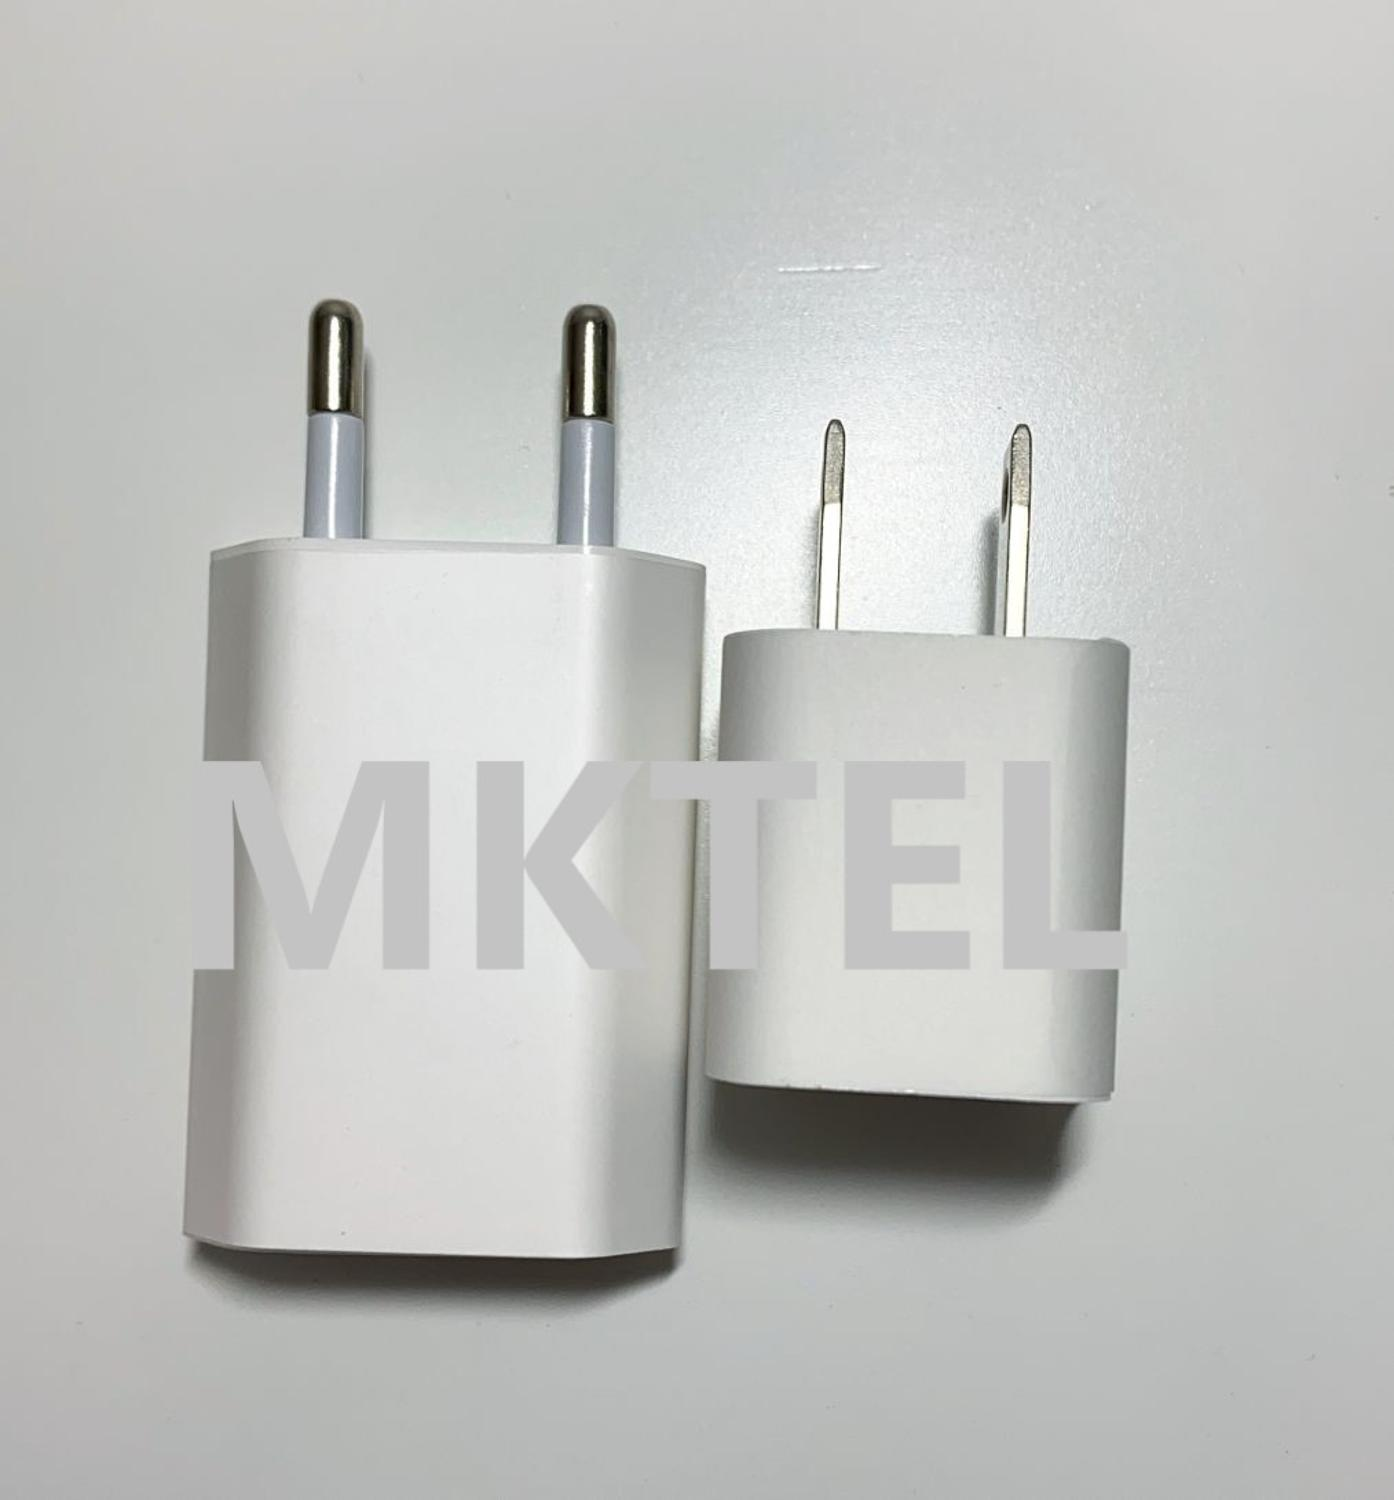 Power Adapter 10 teile/los Für A1400 A1385 5V 1A EU UNS Stecker USB Wand Ladegerät AC Power Adapter für <font><b>iphone</b></font> 8 7 <font><b>6</b></font> 6S plus EU UNS Plugl image